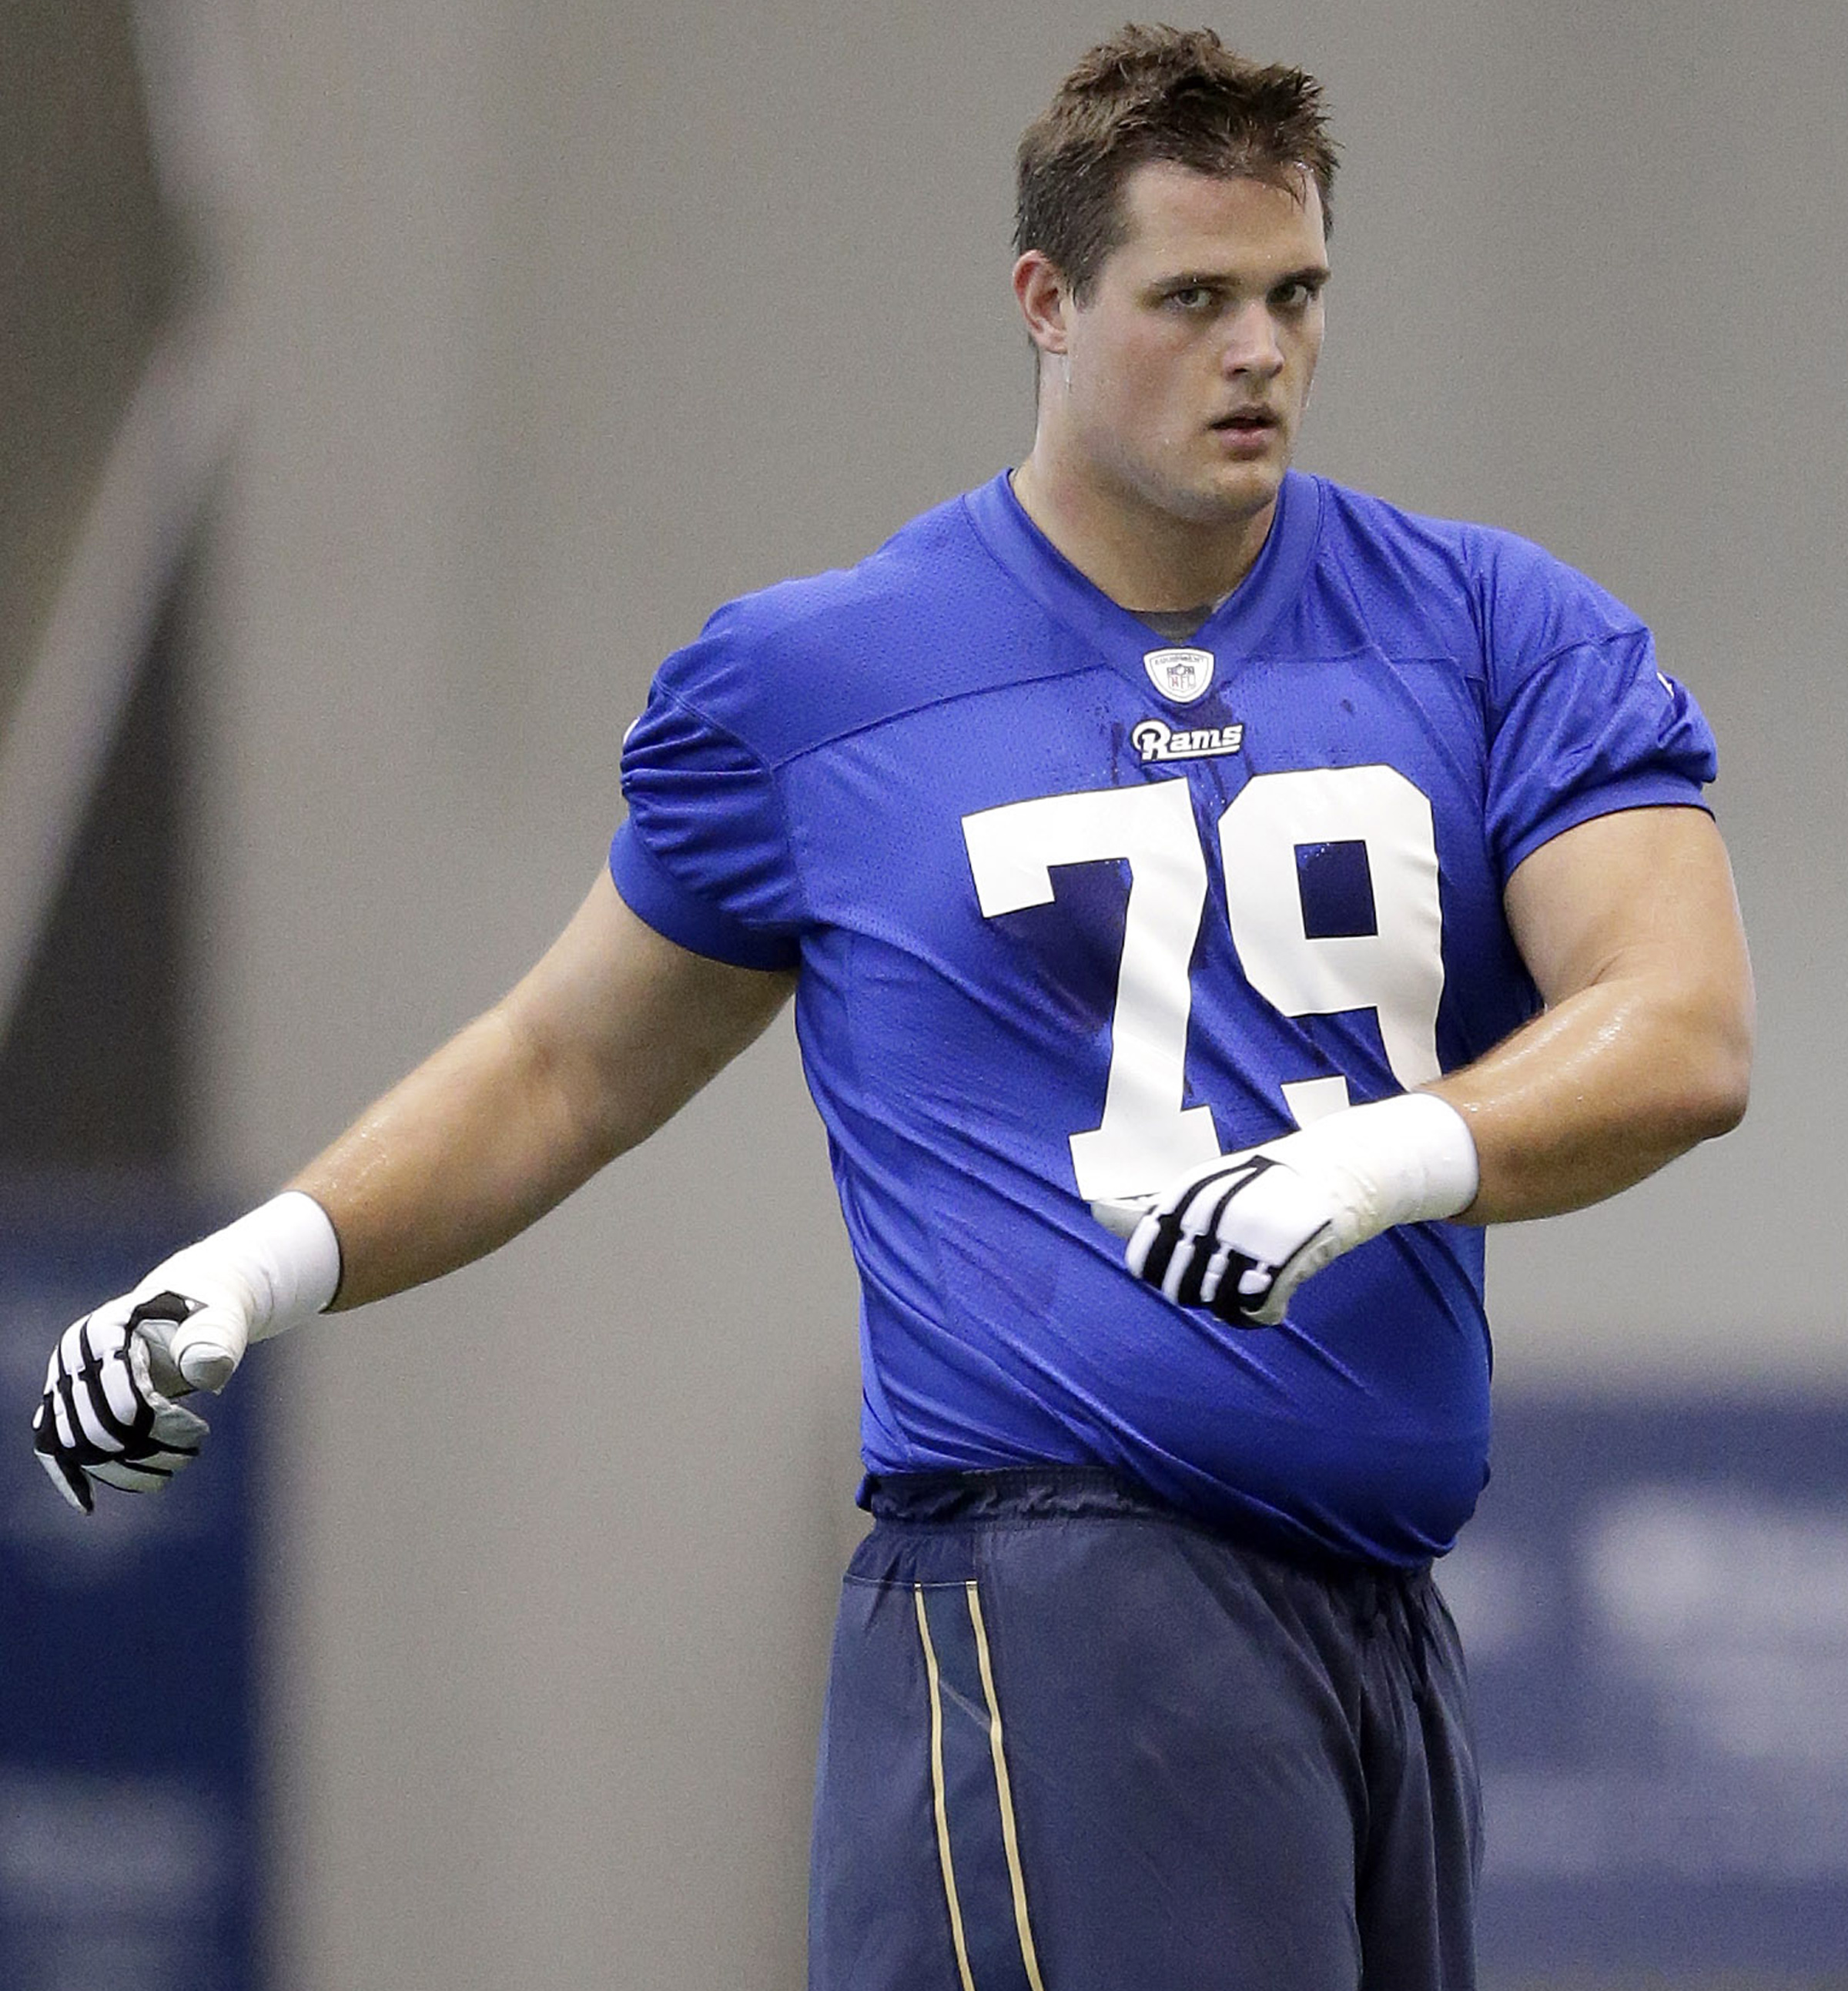 FILE - In this May 8, 2015, file photo, St. Louis Rams offensive tackle Rob Havenstein stretches during a rookie minicamp at the NFL football team's practice facility in St. Louis. The St. Louis Rams appear set to open the season with a pair of rookie off